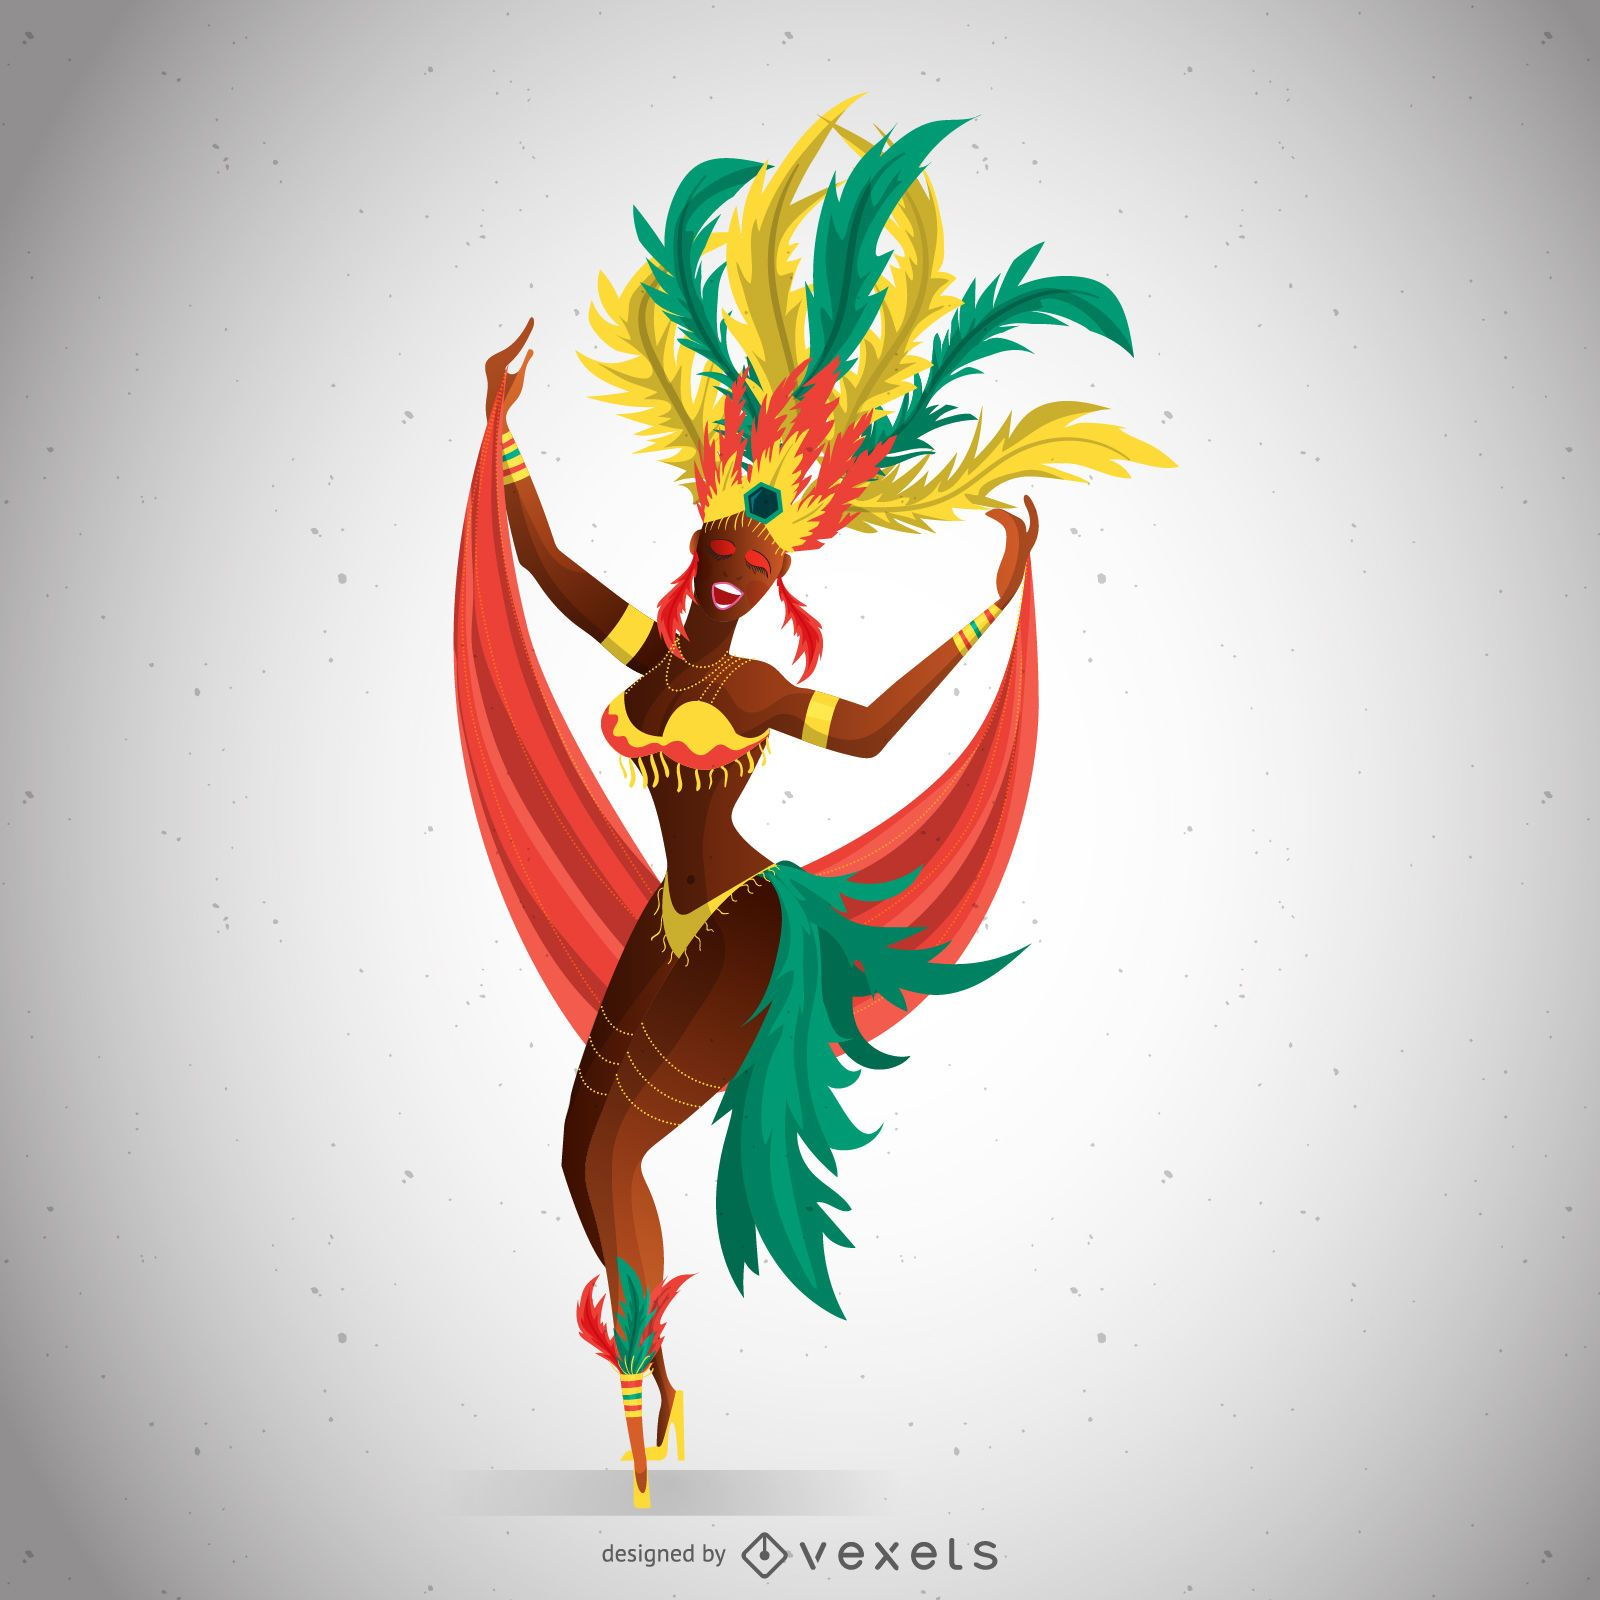 Carnival dancer with colorful costume